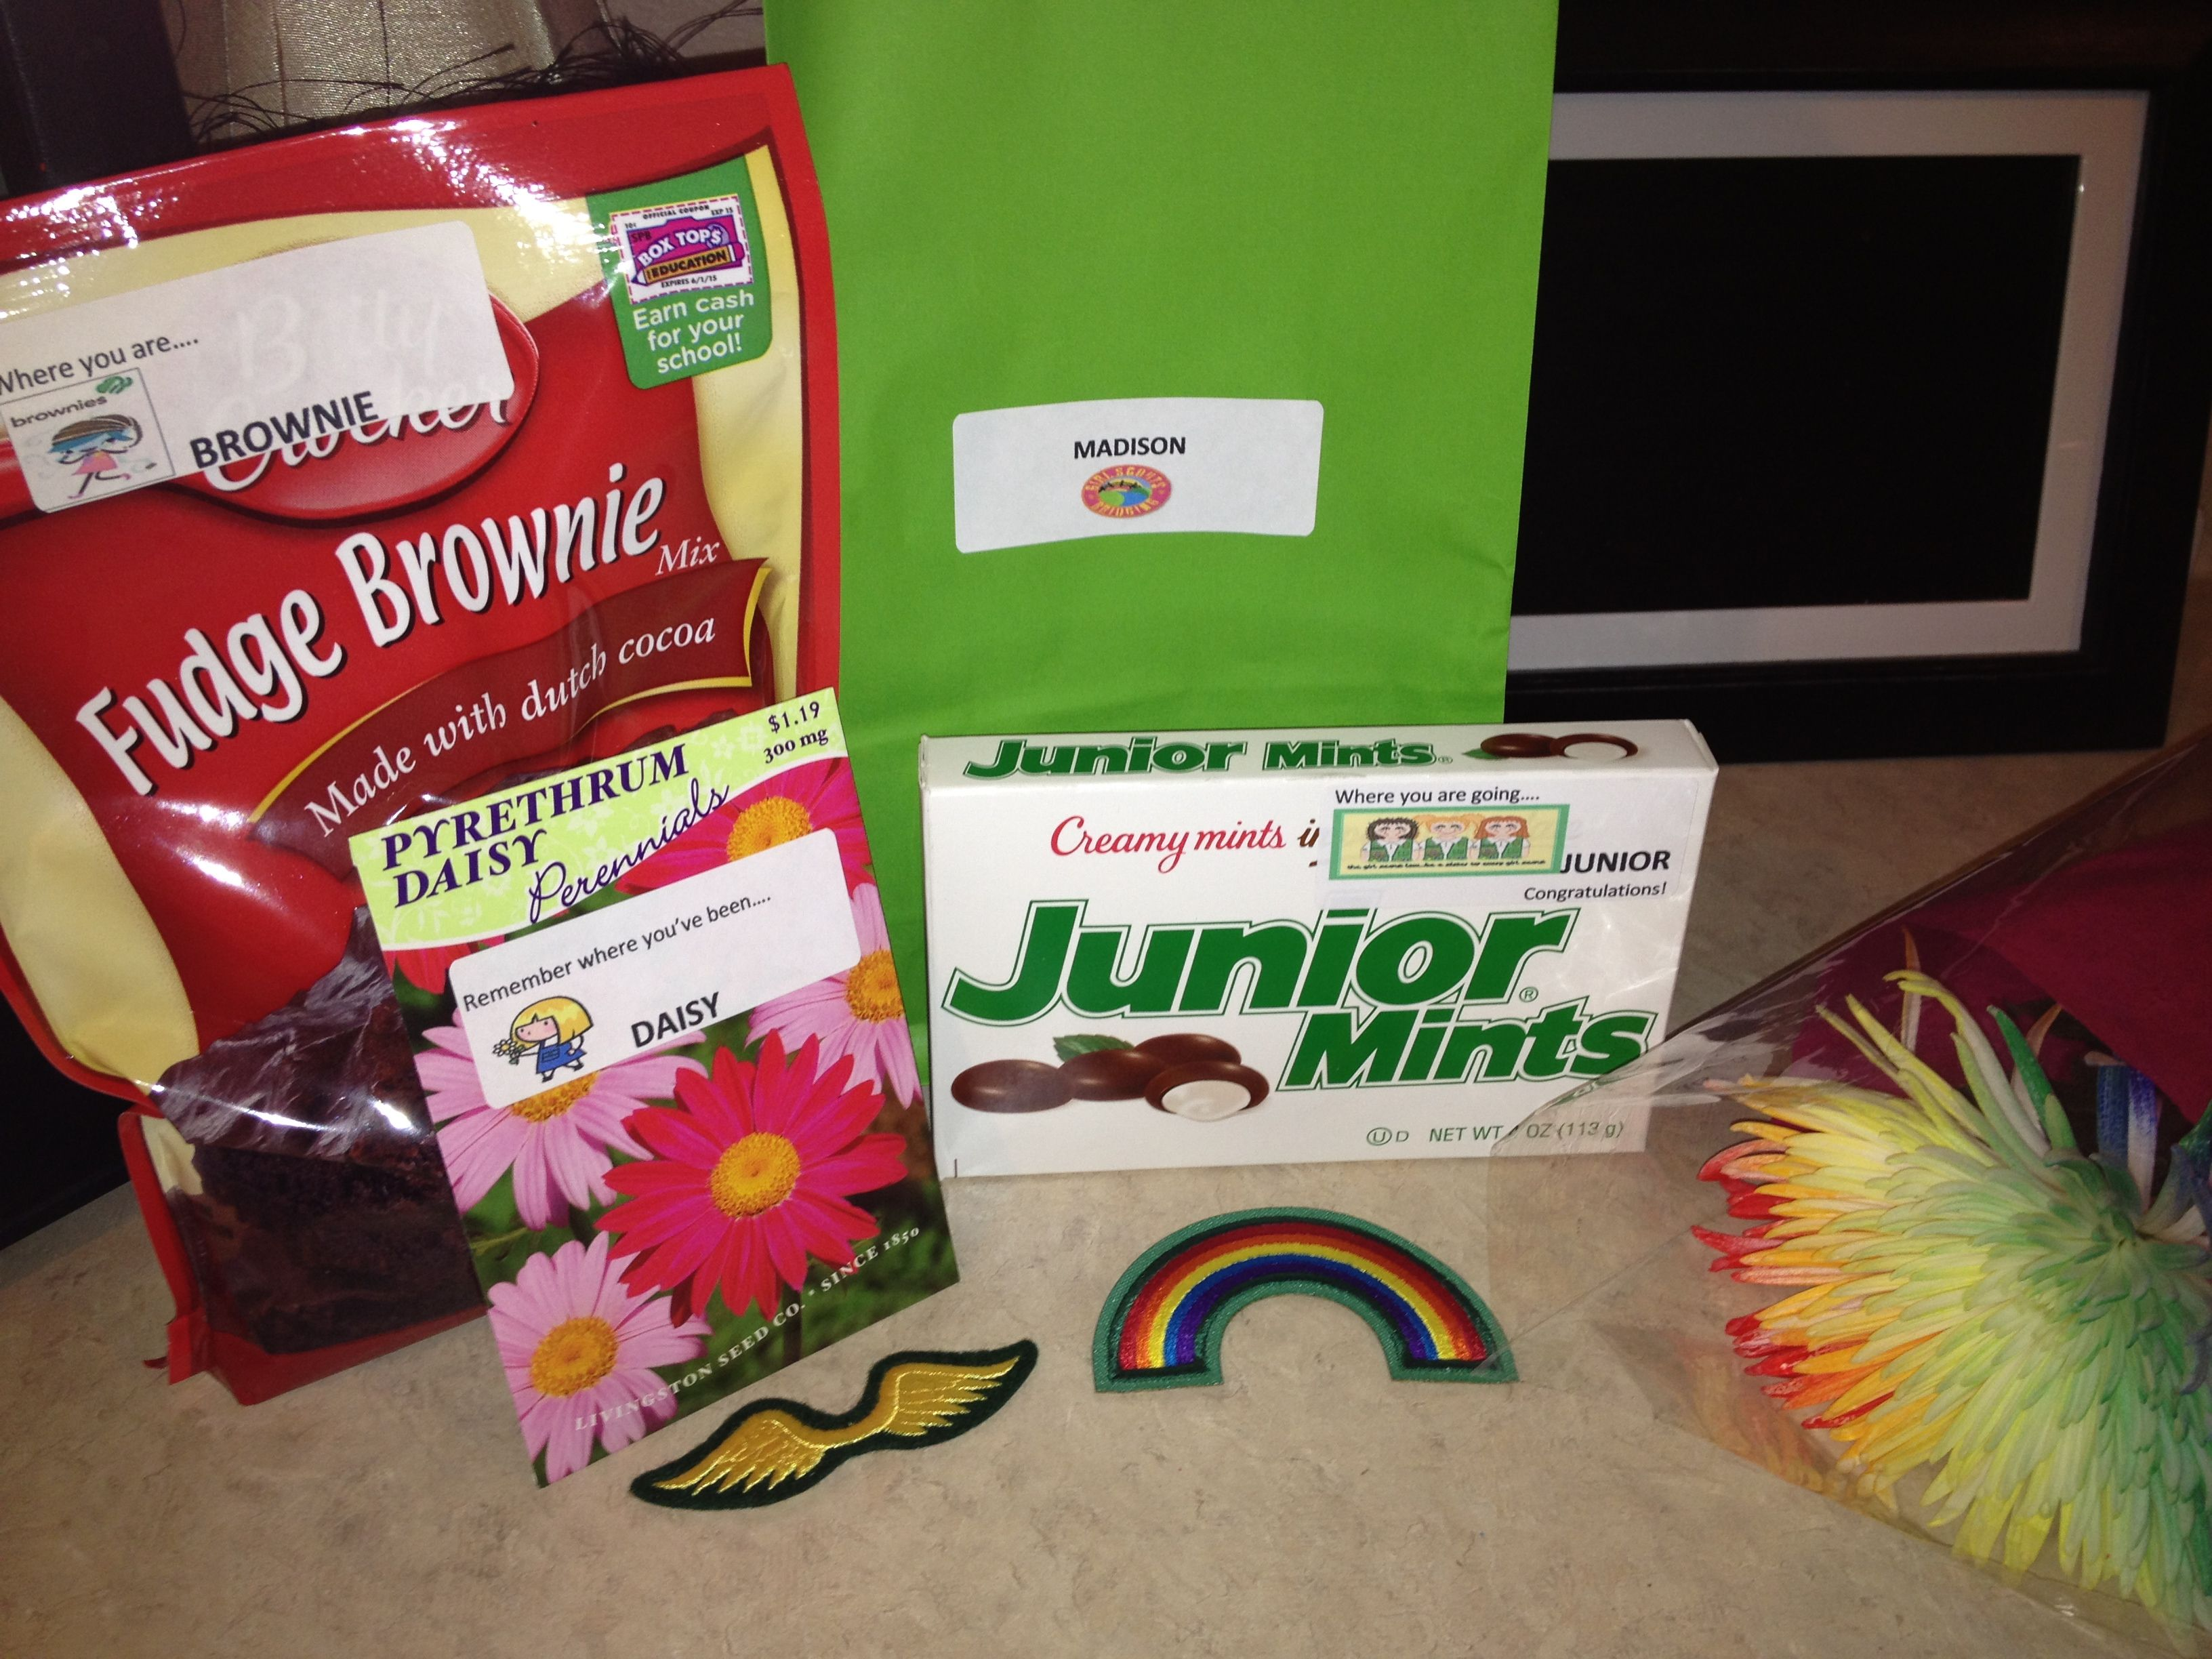 Girl scout scrapbook ideas - Girl Scout Brownie Bridging To Junior Daisy Idea For First Meeting Gift Seeds Remember Where You Ve Been Brownie Mix Where You Are Junior Mints Where You